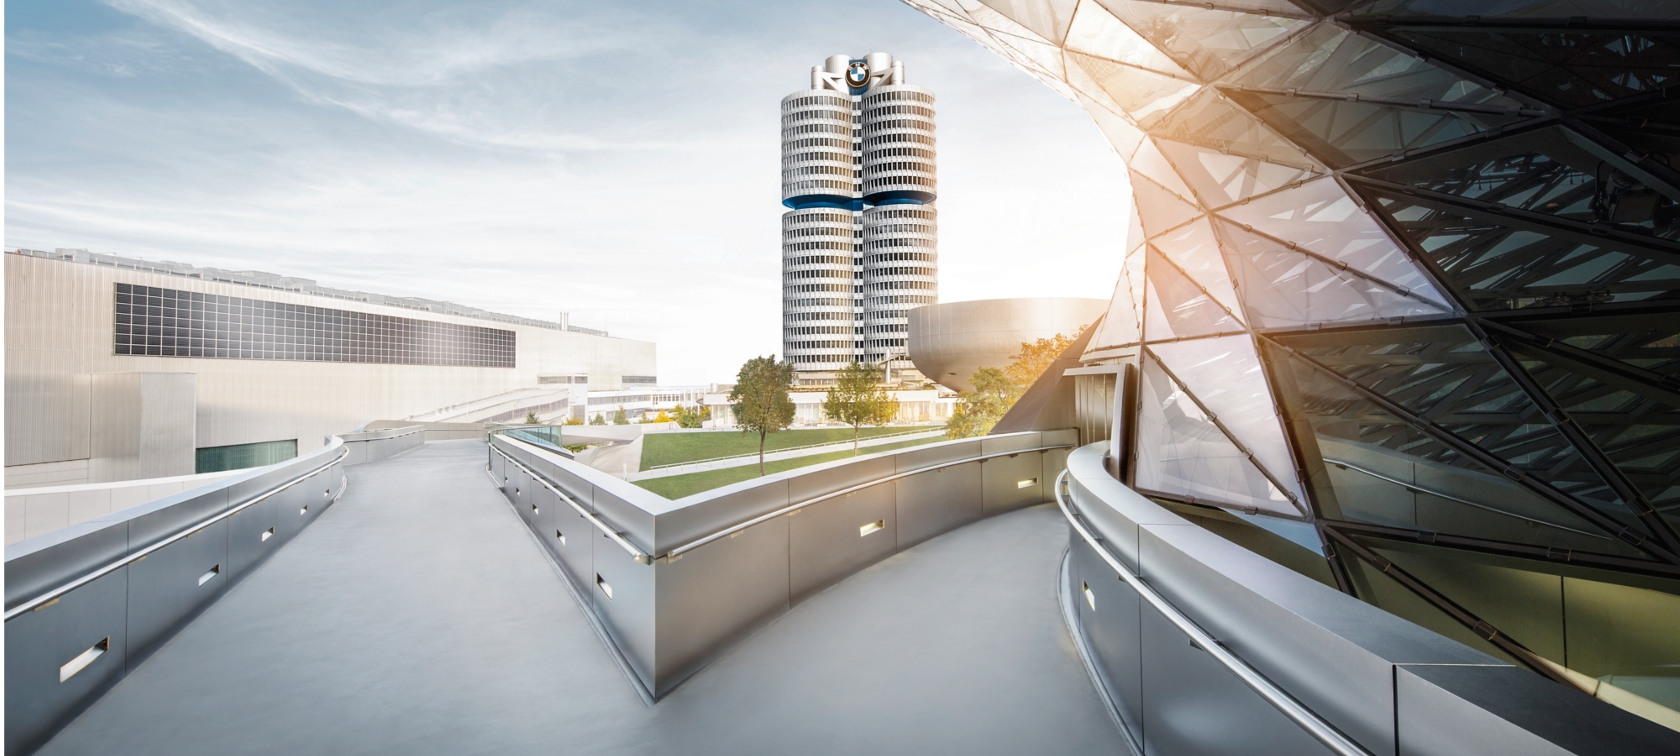 BMW Group Headquarters